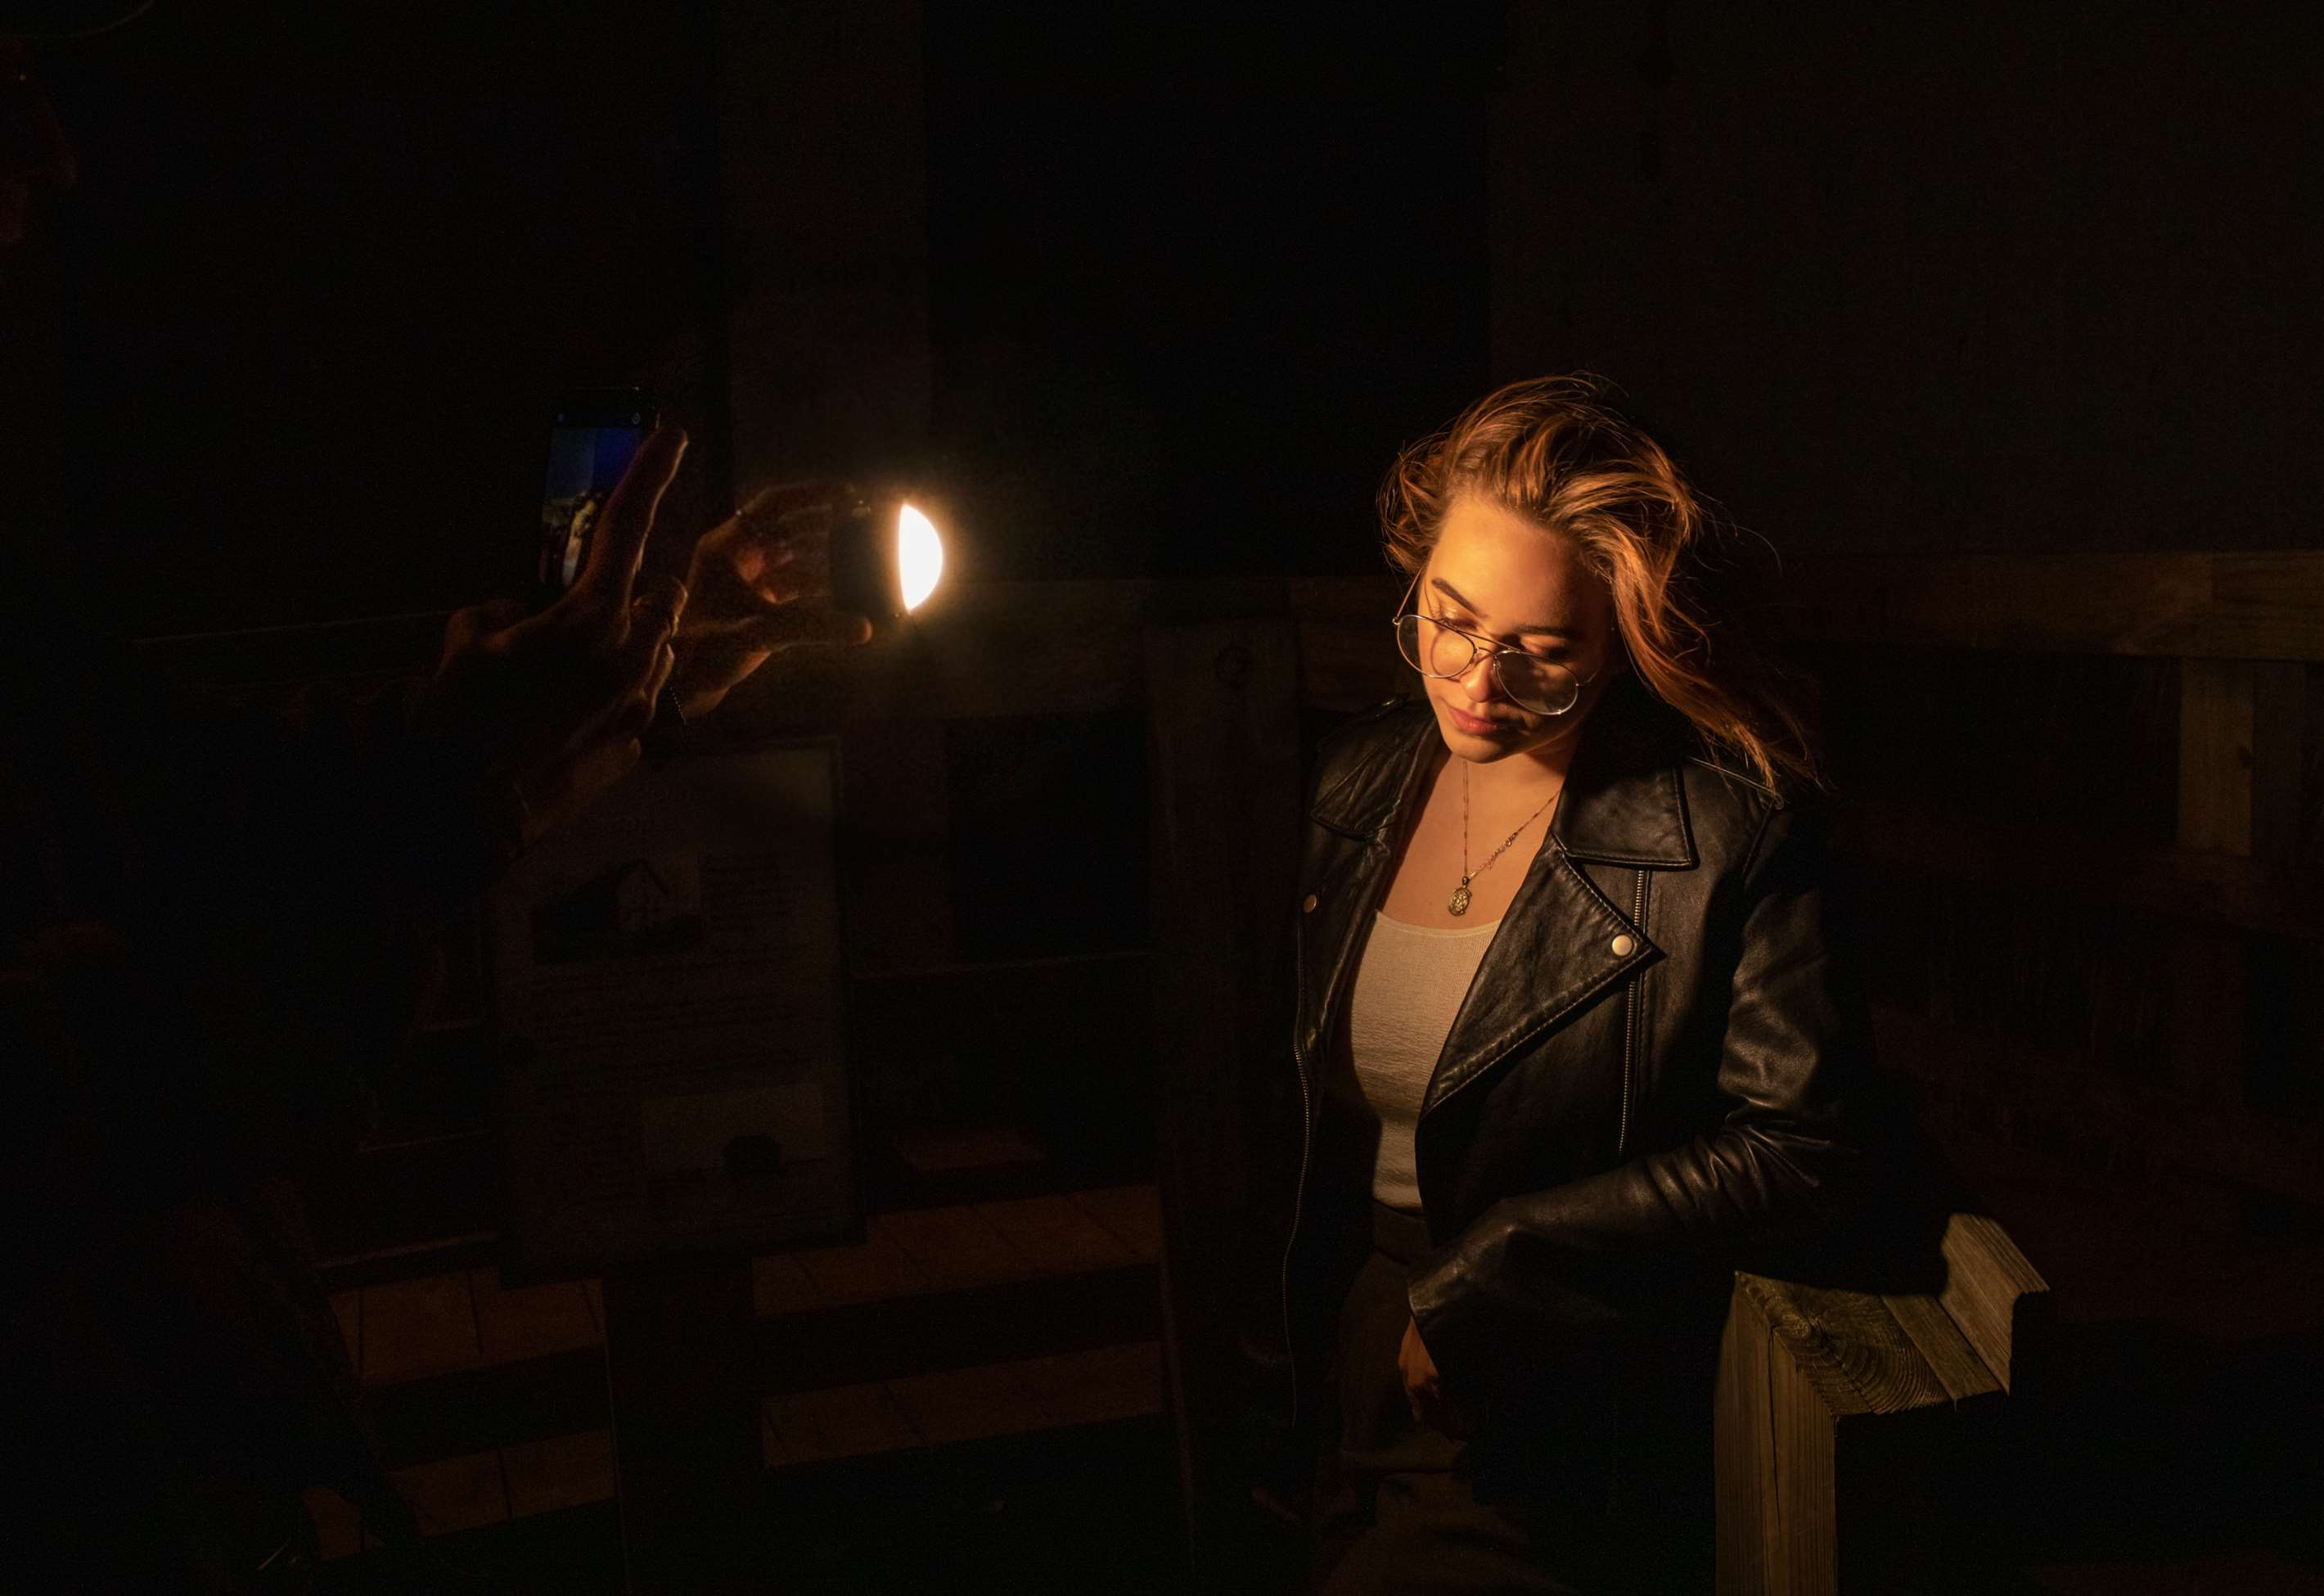 Profoto C1 professional smartphone light being used to photograph female model in glasses and leather jacket